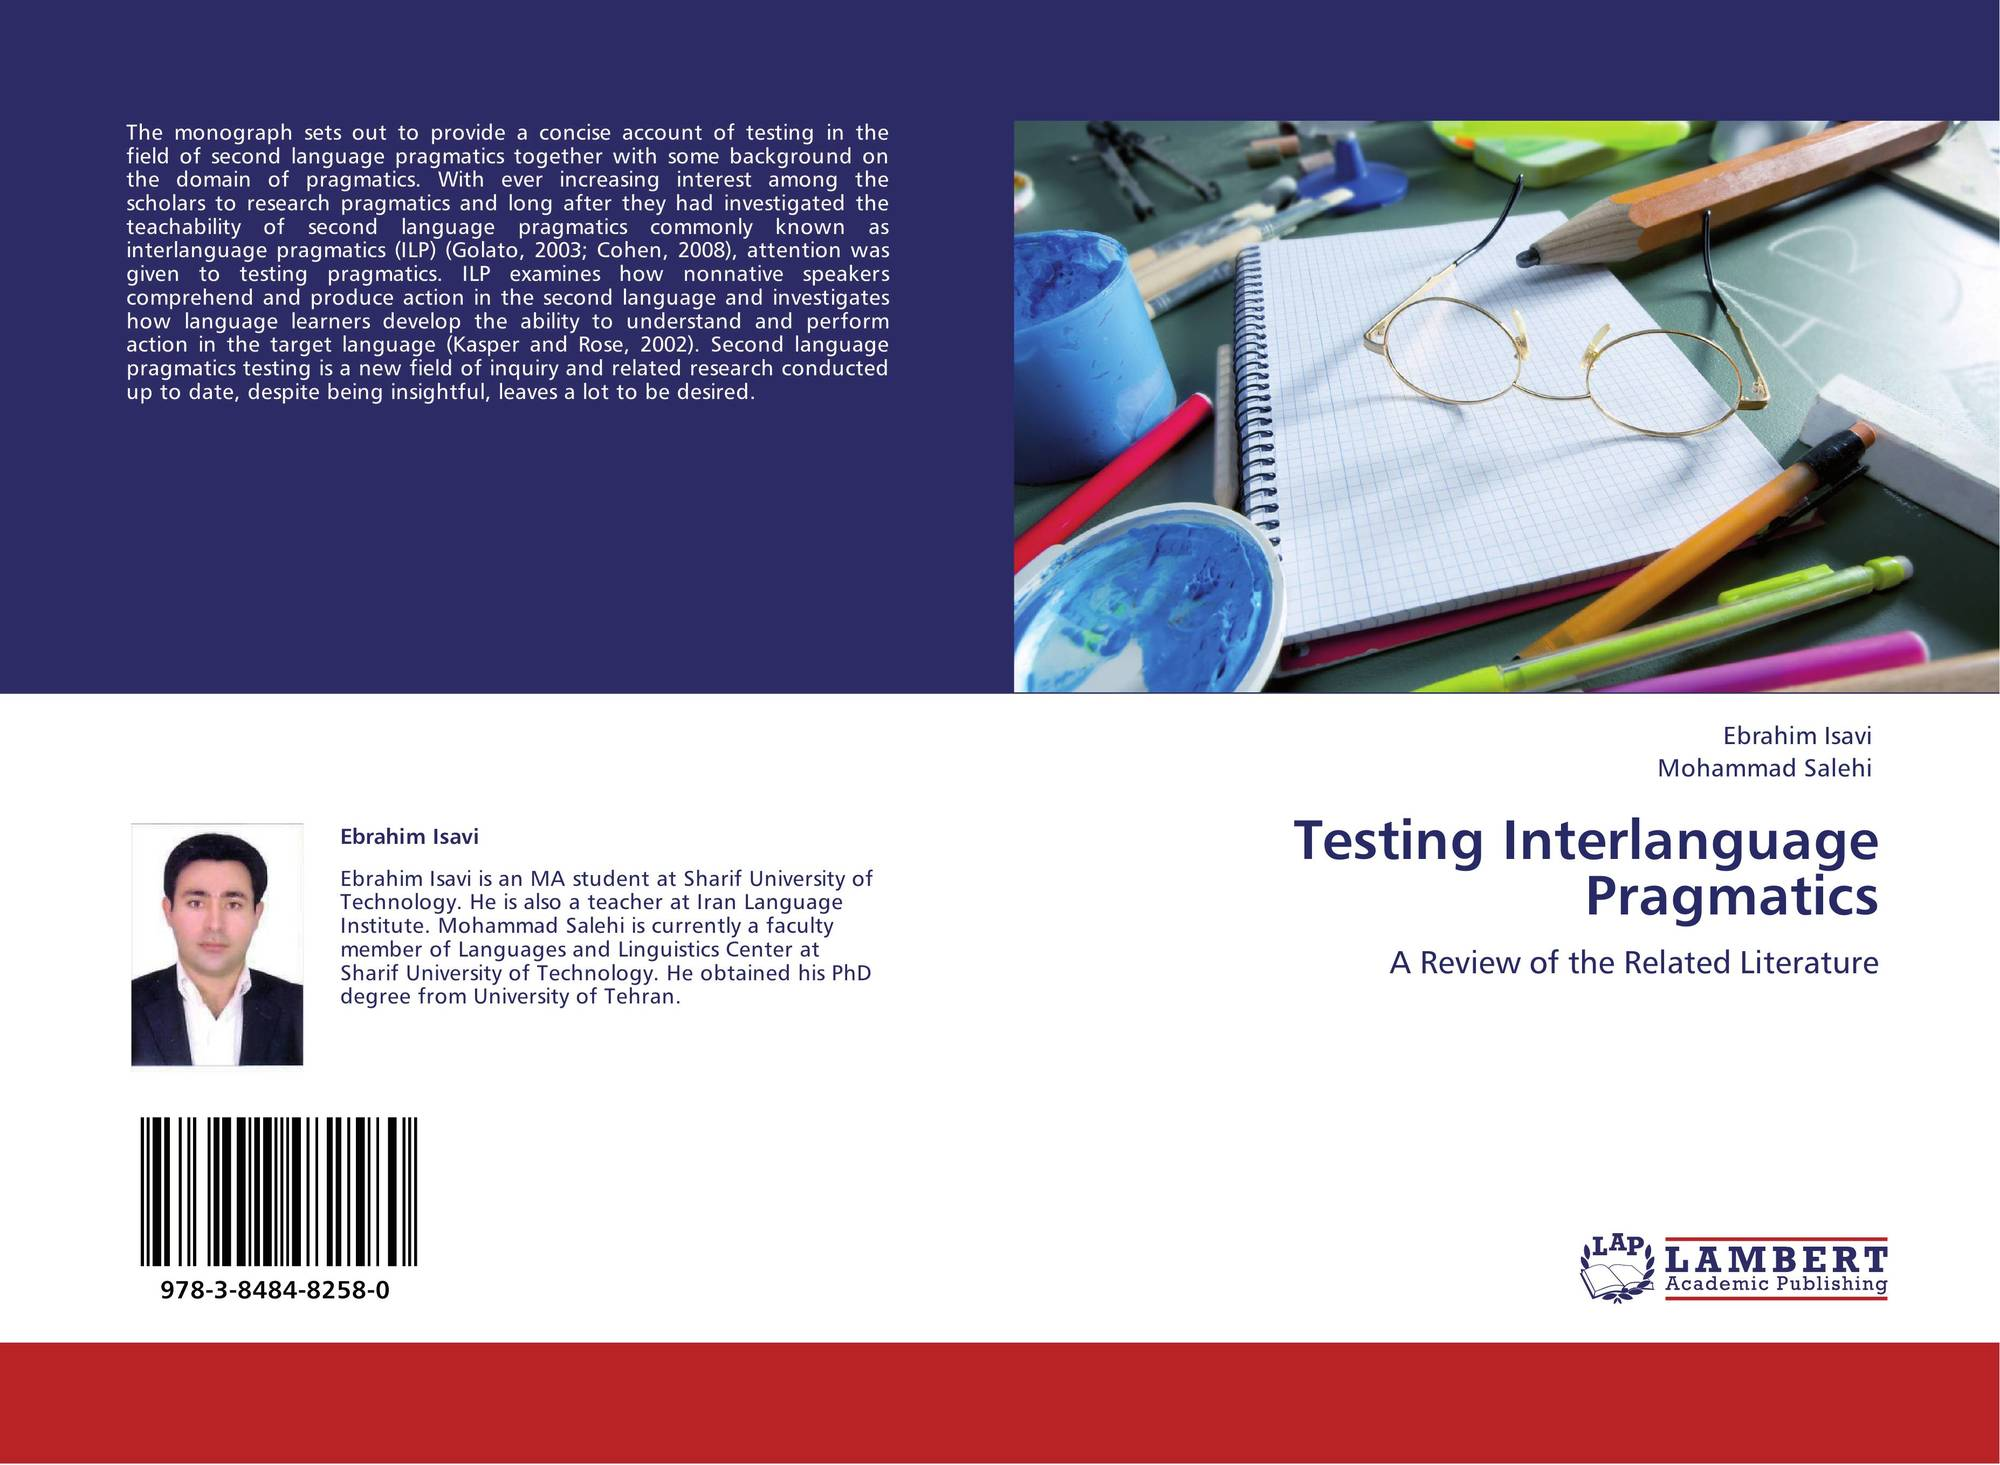 thesis on interlanguage pragmatics Unlike most editing & proofreading services, we edit for everything: grammar, spelling, punctuation, idea flow, sentence structure, & more get started now.